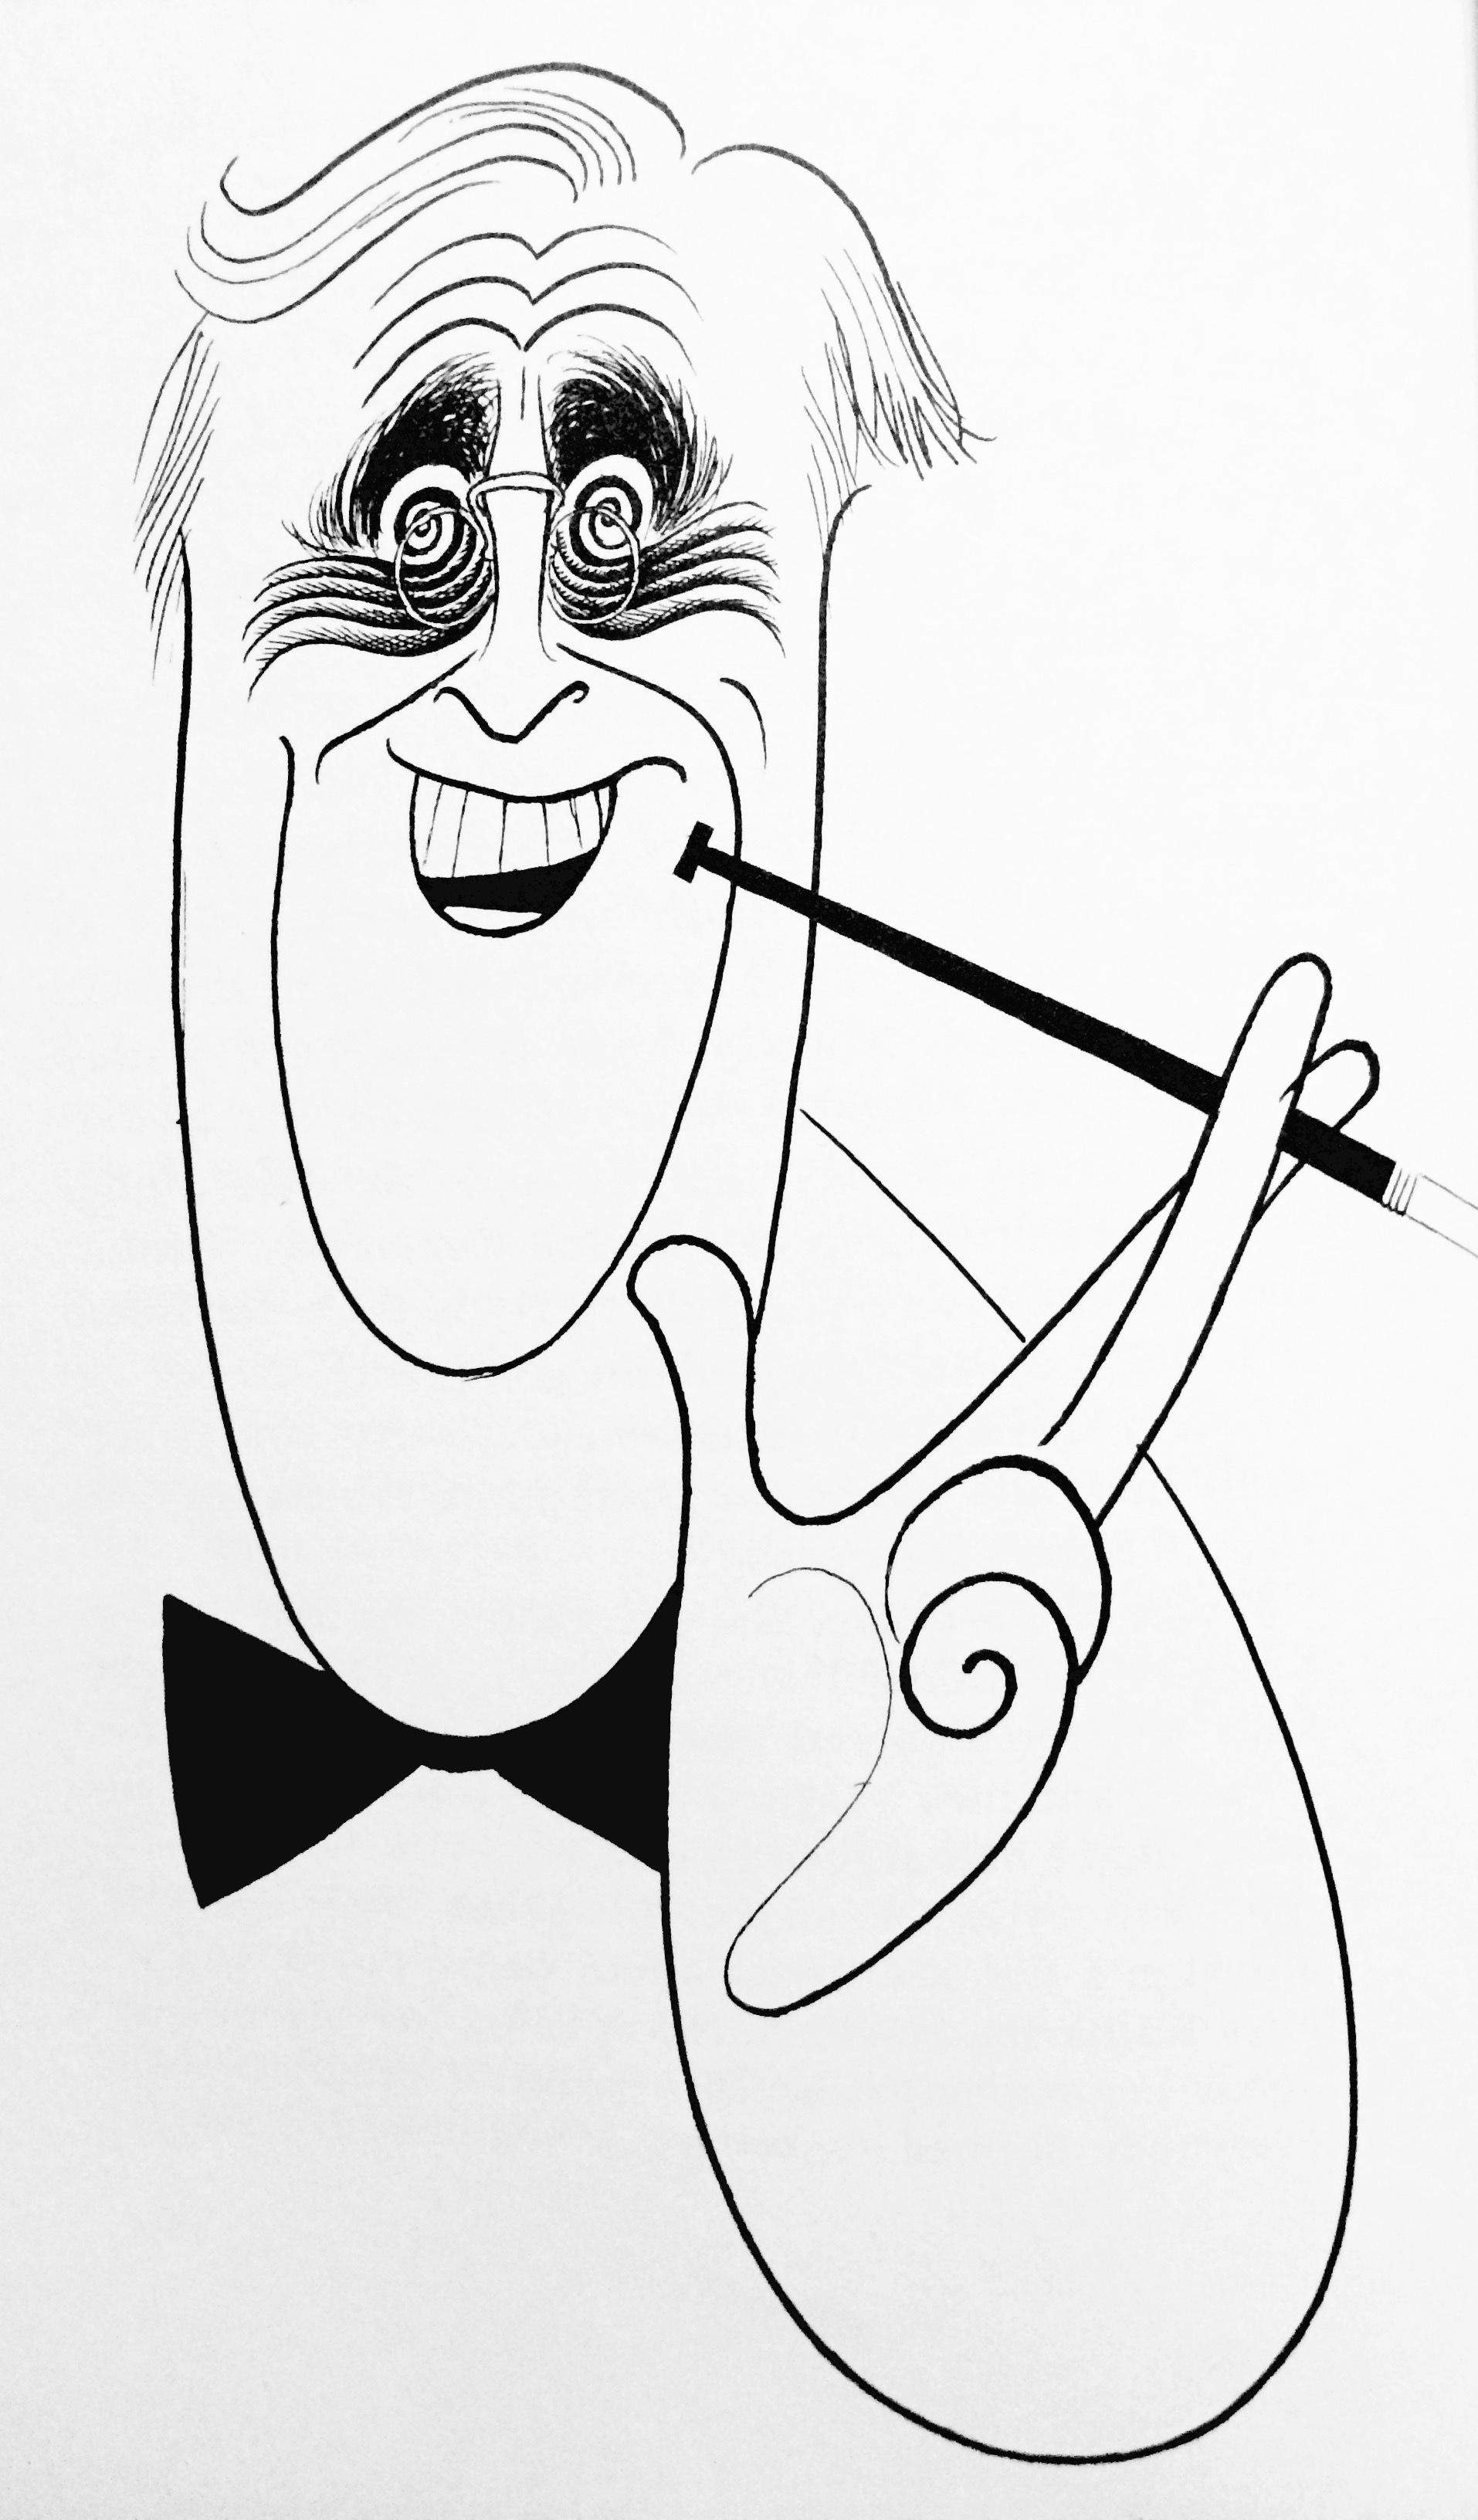 1914x3264 Al Hirschfeld ~ Franklin D. Roosevelt Humor Myself Or, Good Art